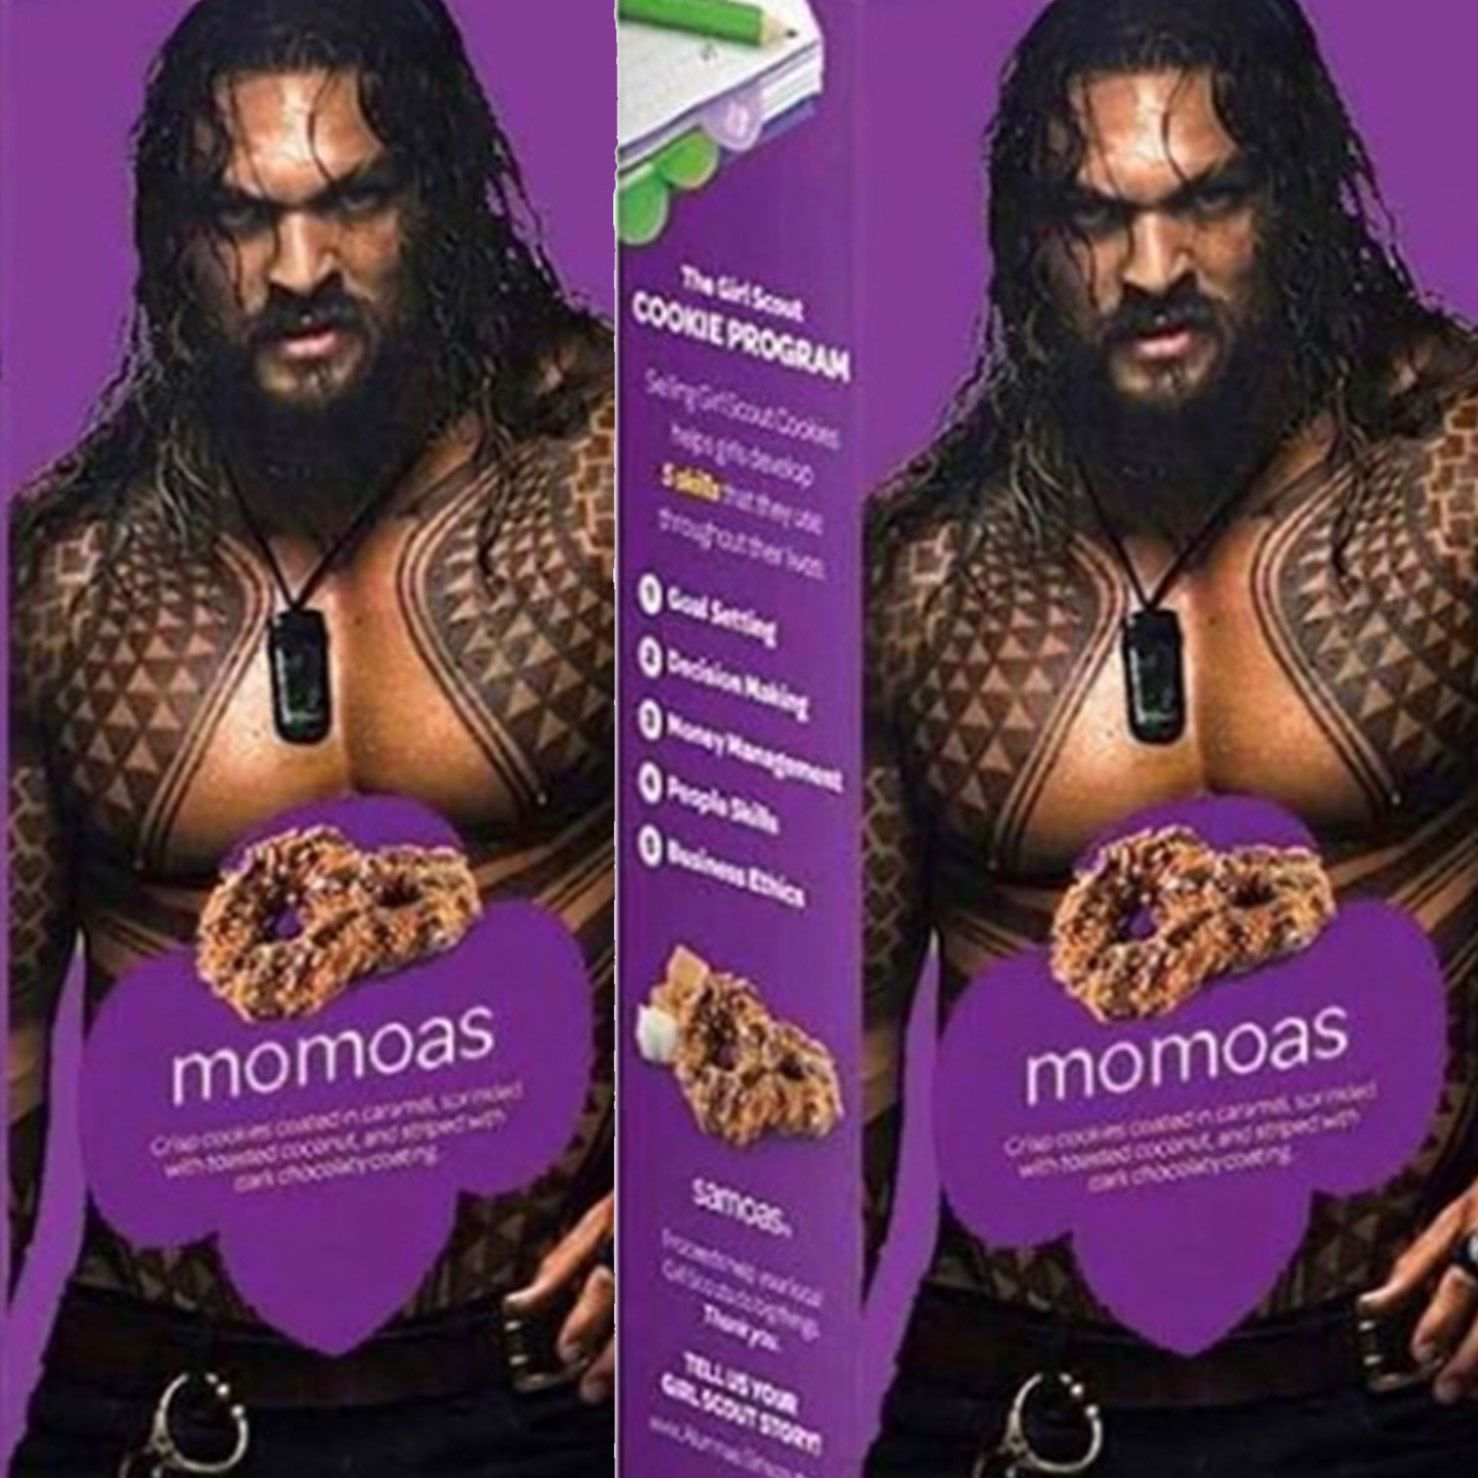 A Girl Scout Put a Shirtless Jason Momoa on a Box of Samoas and Sales Skyrocketed